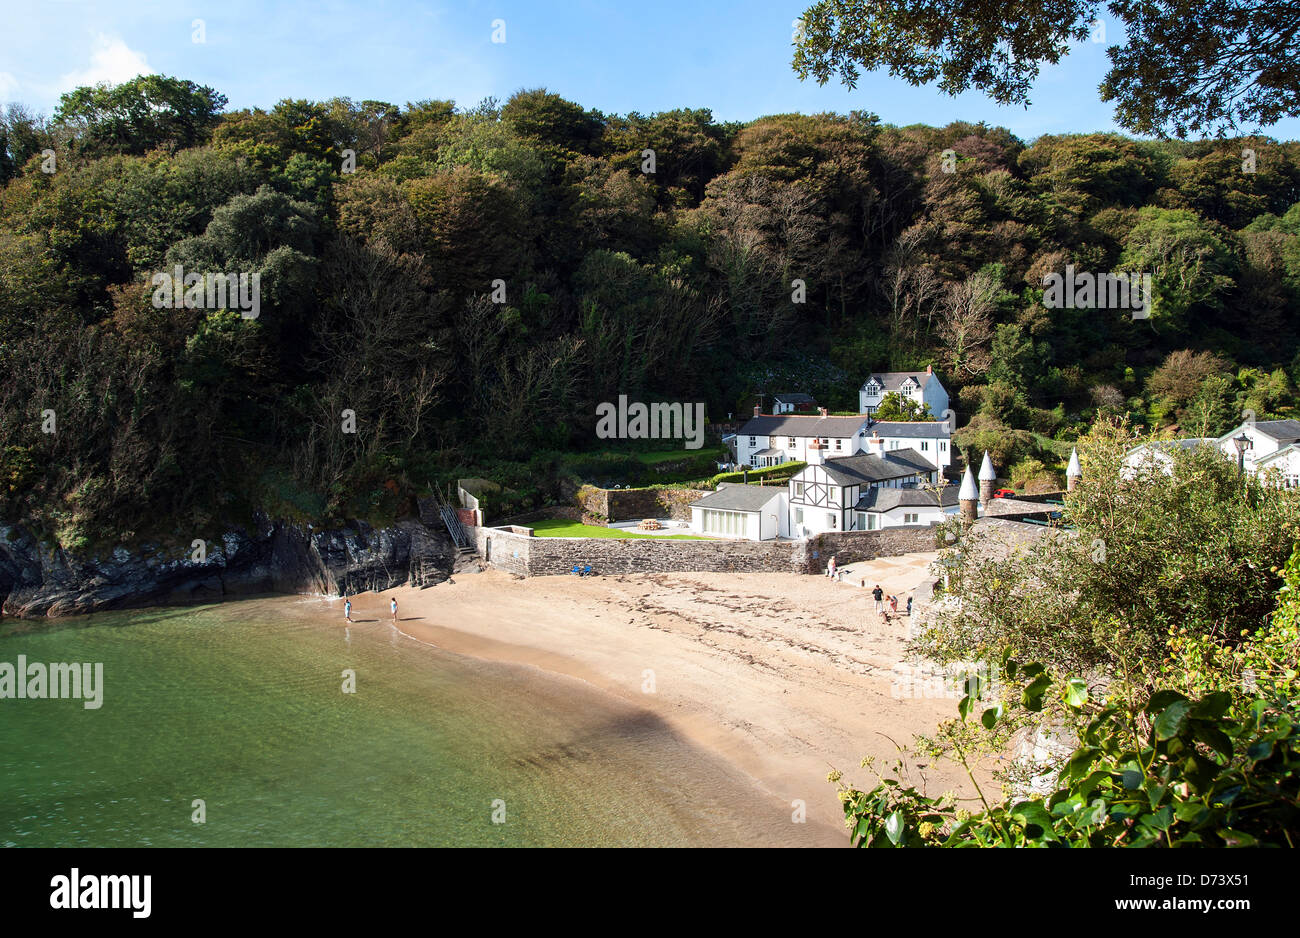 Ready Money Cove near Fowey in Cornwall, UK - Stock Image